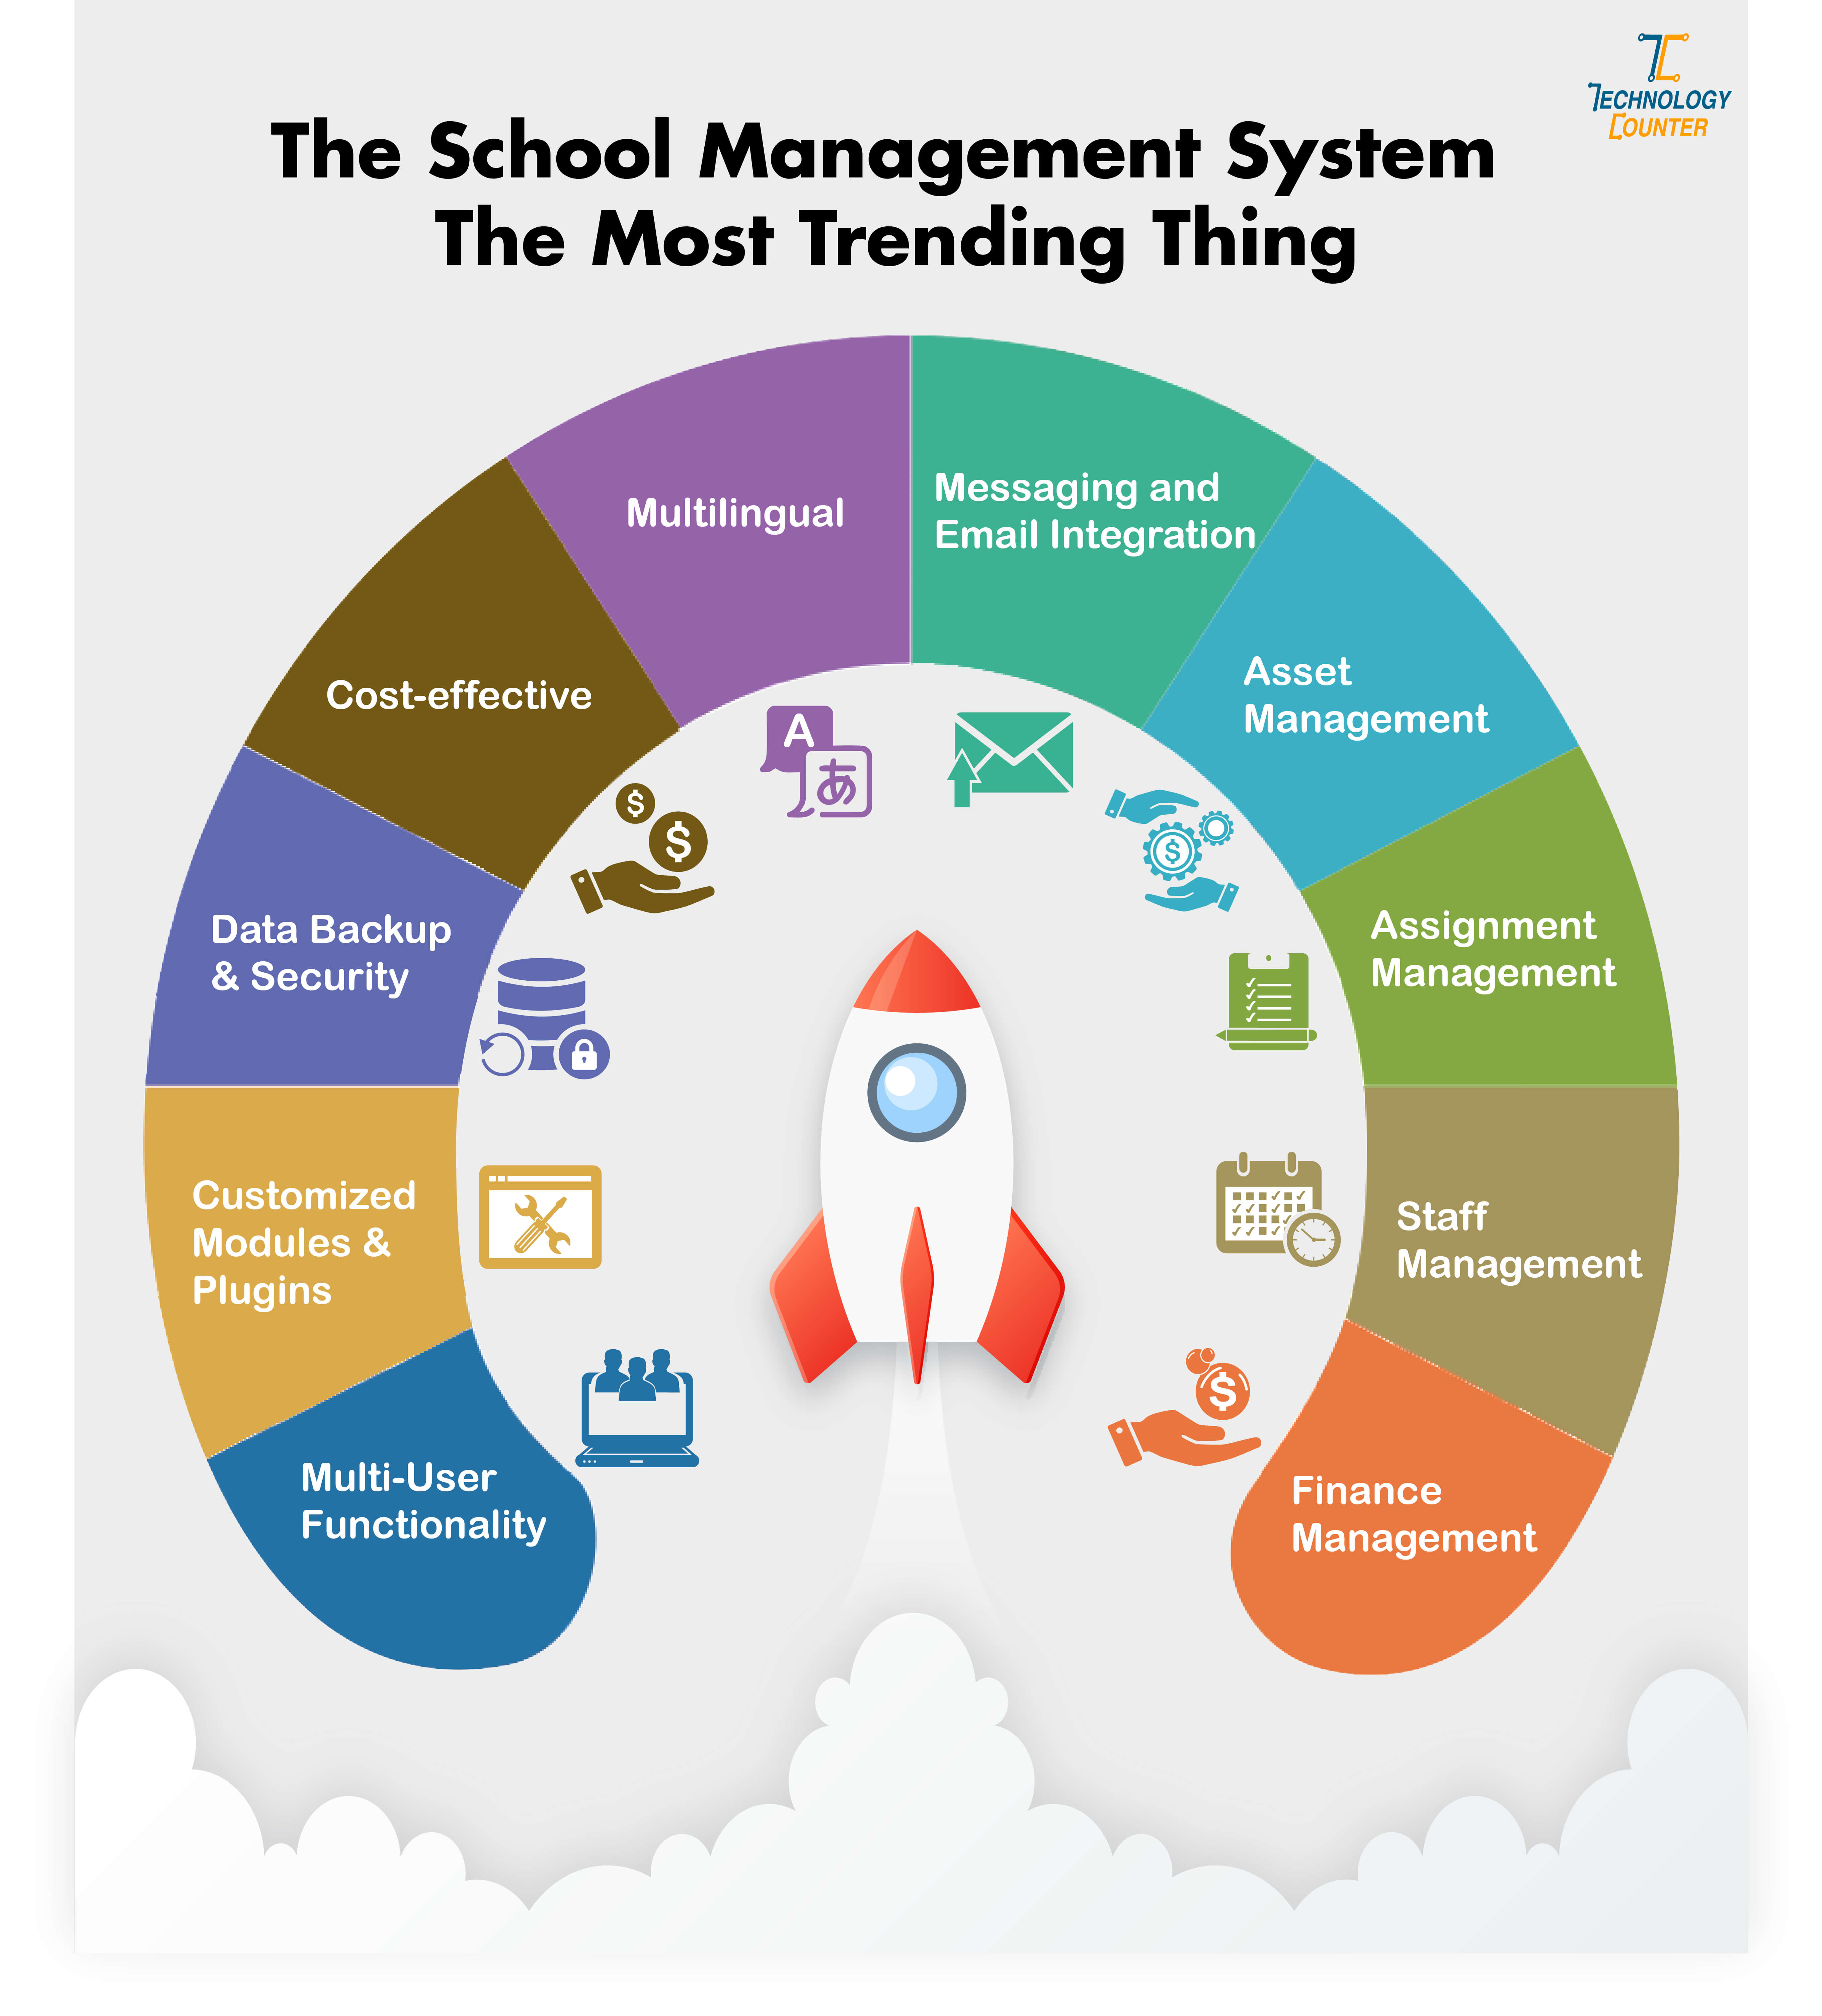 The school management system the most trending thing